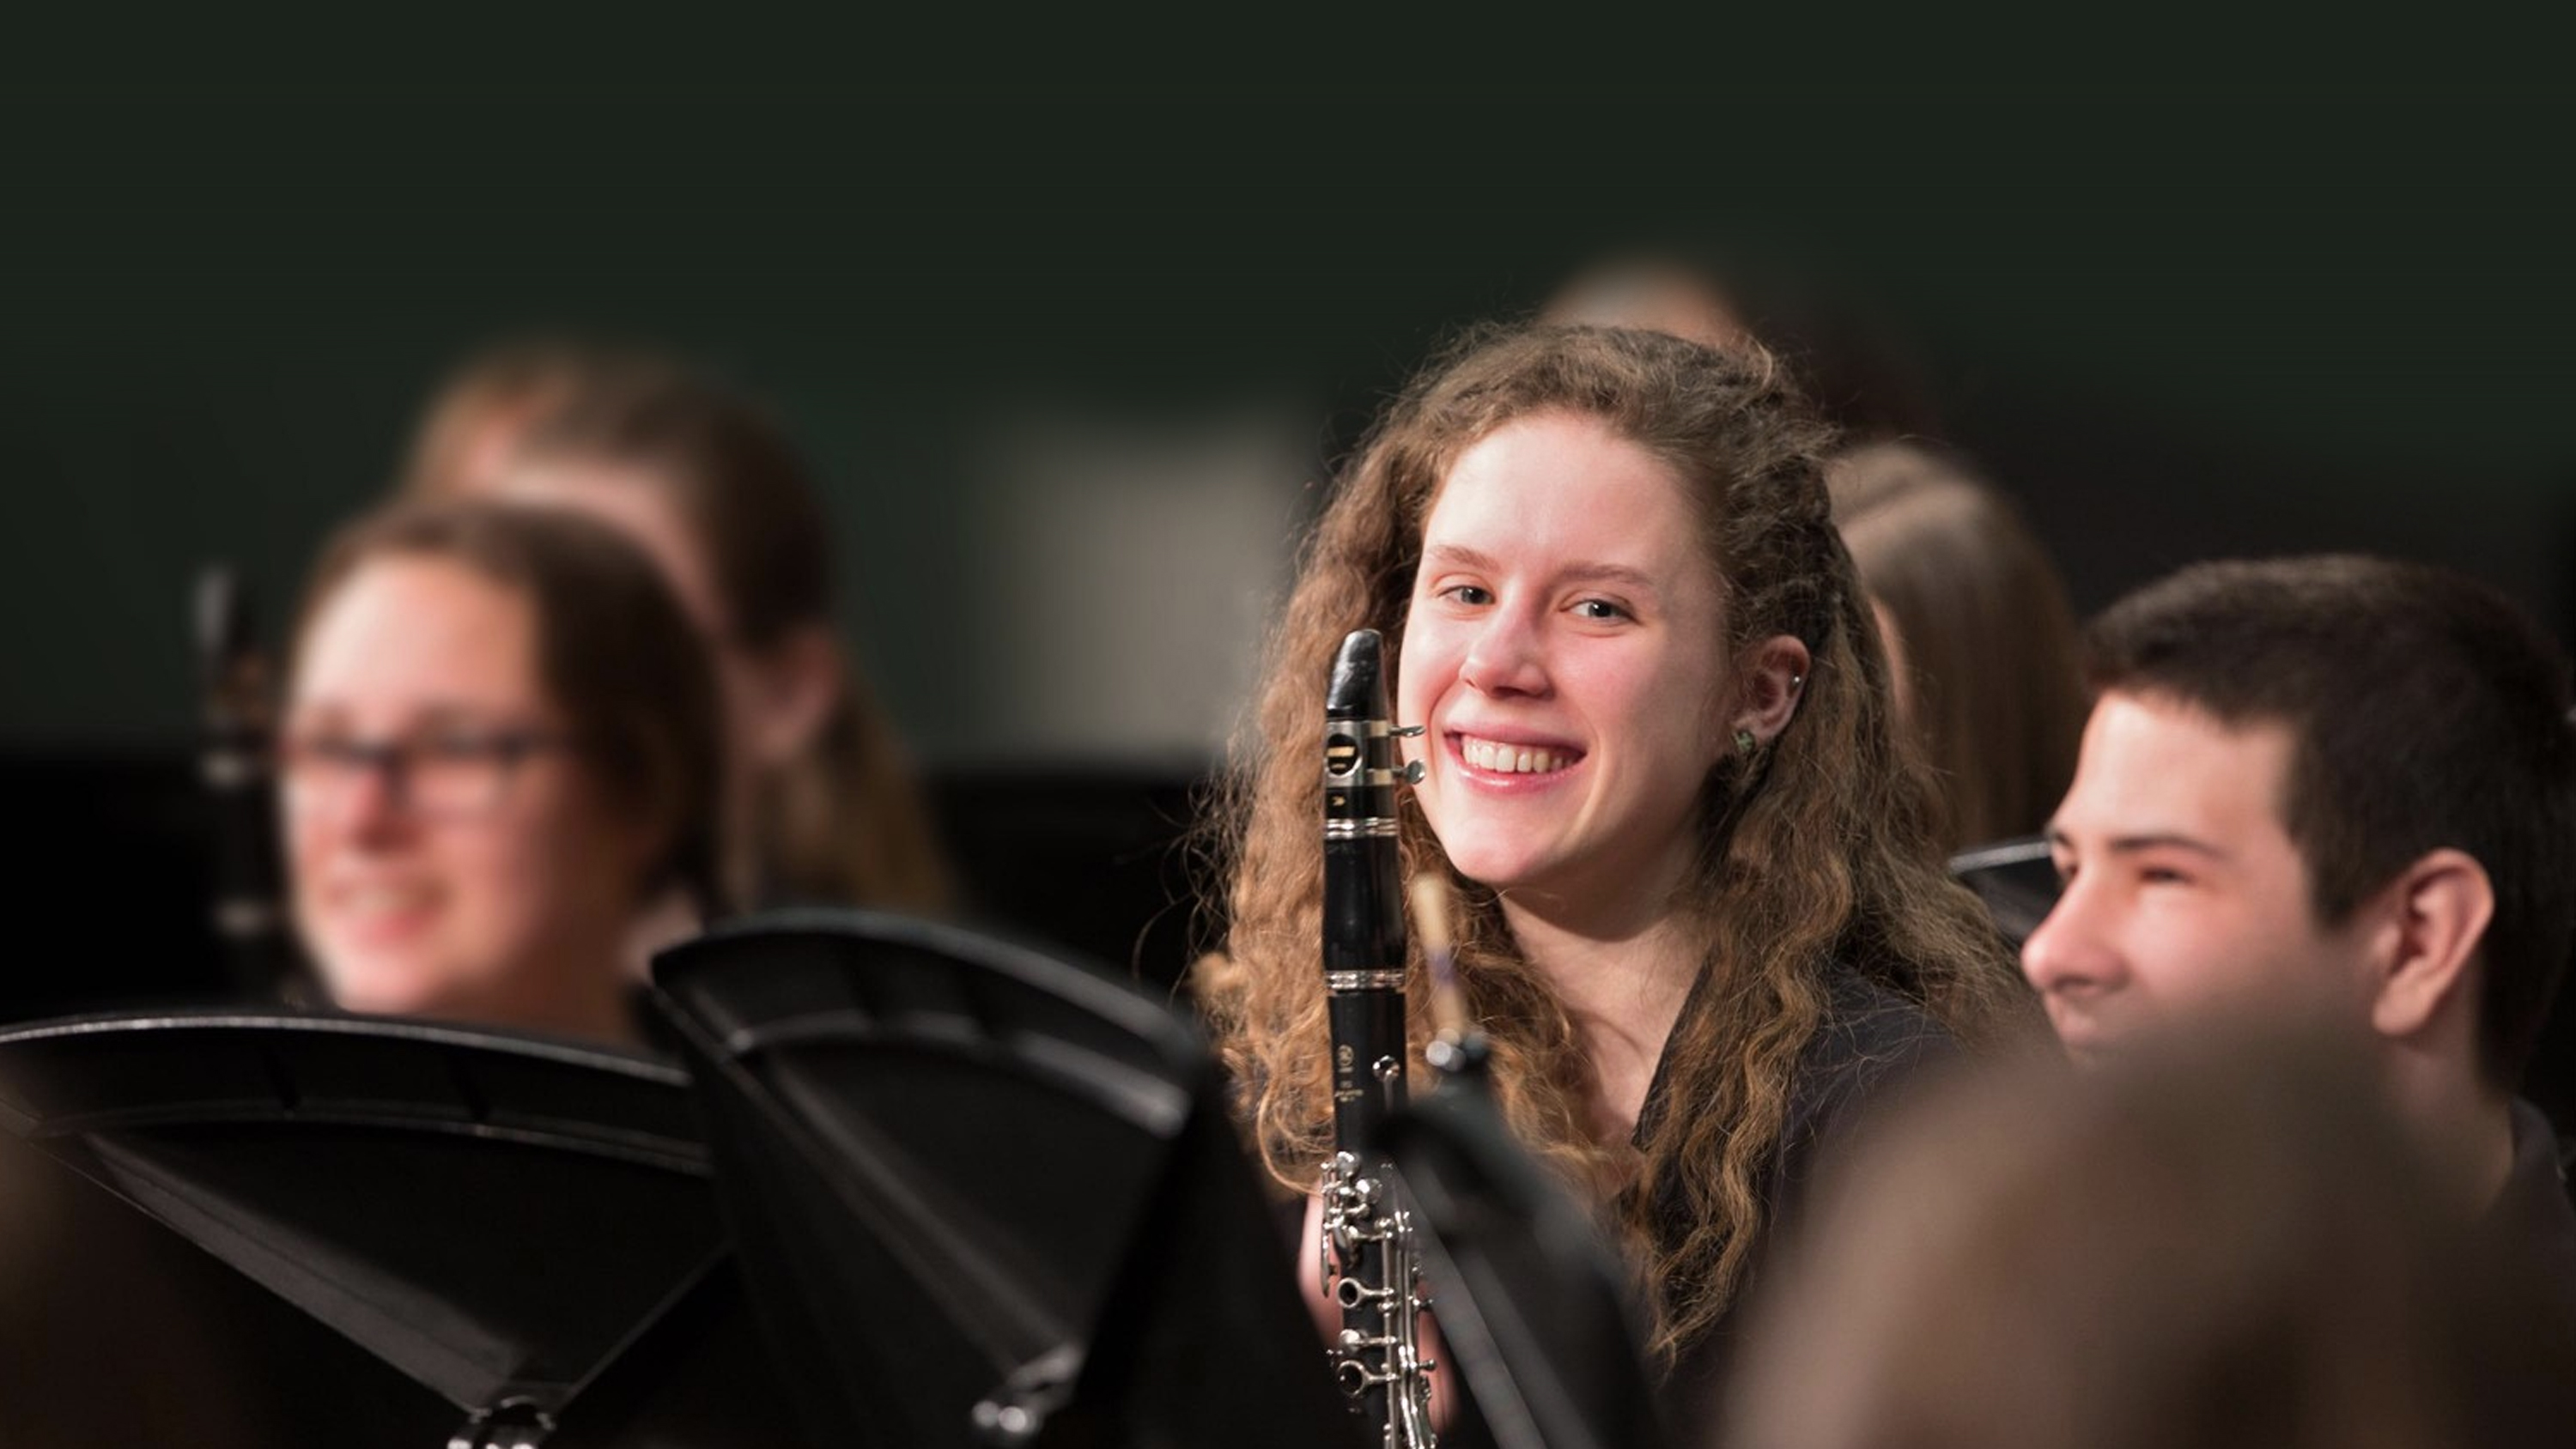 Students participate in custom musical performances in New York, Hawaii and at Disneytrips to